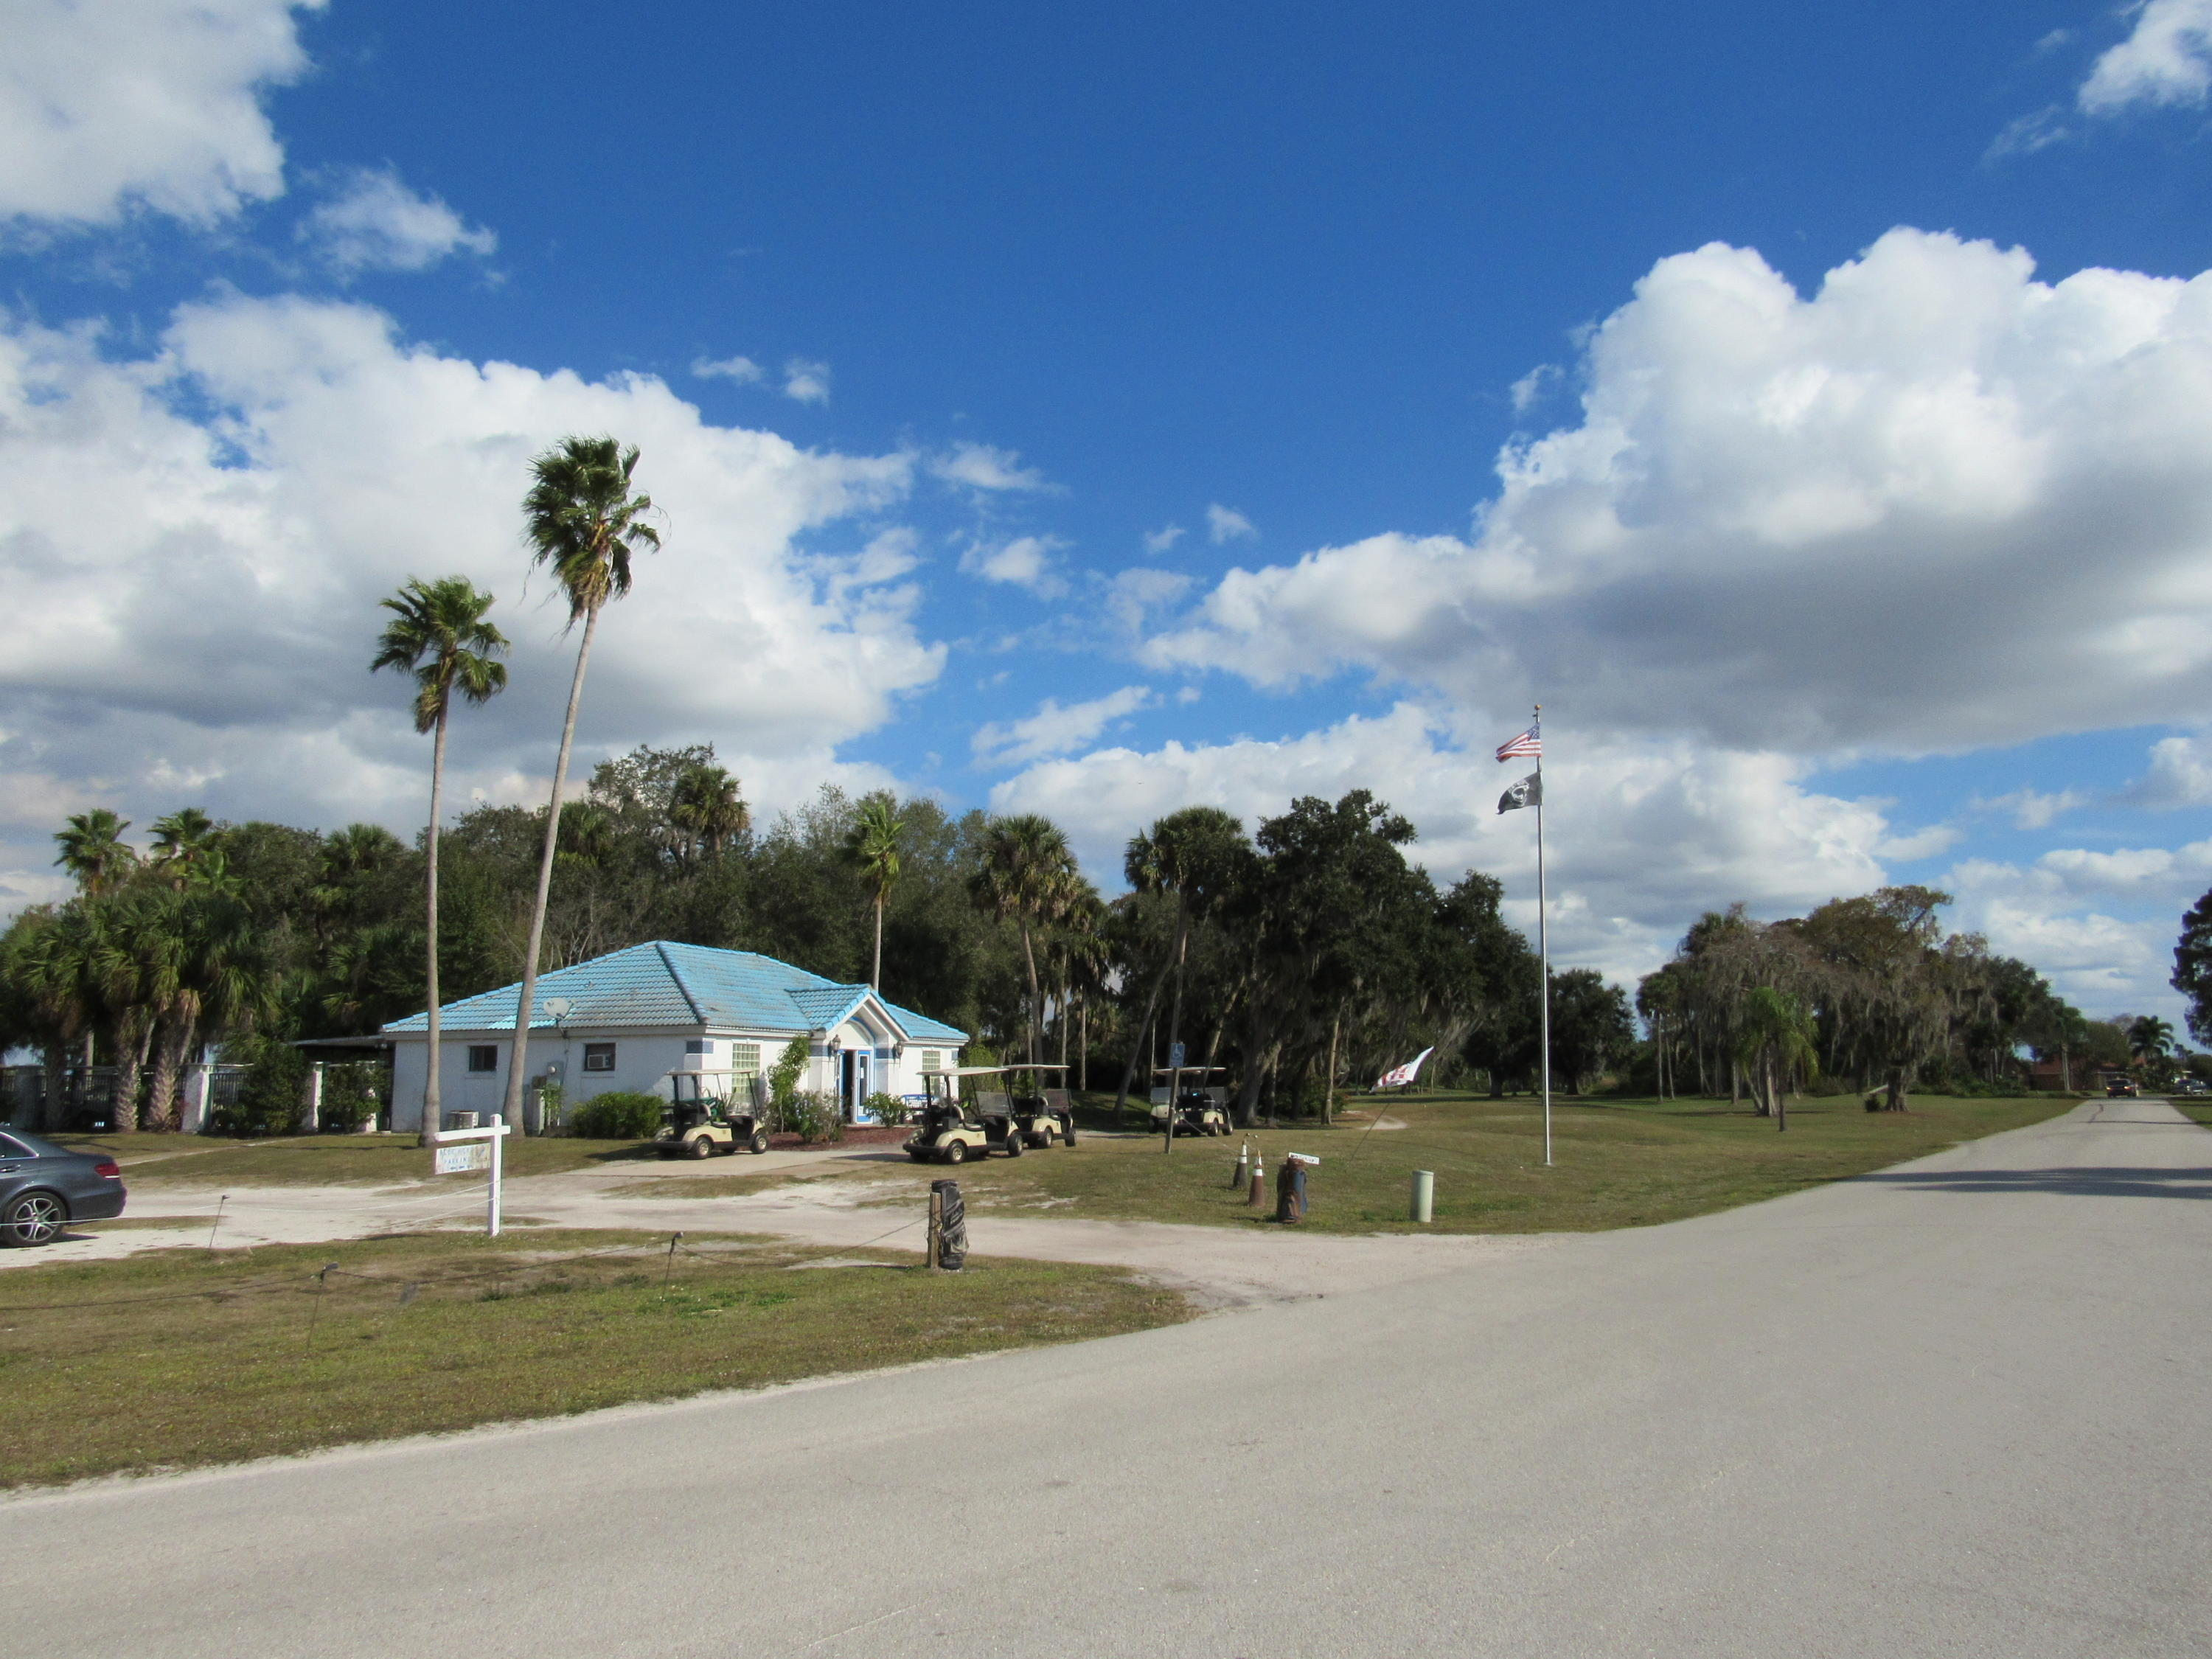 This is a great opportunity to own a golf course with club house in an upscale residential area in Okeechobee.  In addition to the club house, there are two other buildings used for storage.  The tennis courts and pool have not been used for quite some time.  There are four parcels included in this listing, including a residential development site.    A portion of the property is located on Taylor Creek which flows into Lake Okeechobee.  138.76 acres +-Four parcels: 2-27-37-35-0A00-00001-A000, 2-27-37-35-0A00-00001-0000, 2-22-37-35-0A00-00043-A000, 2-22-37-35-0A00-00041-A000.